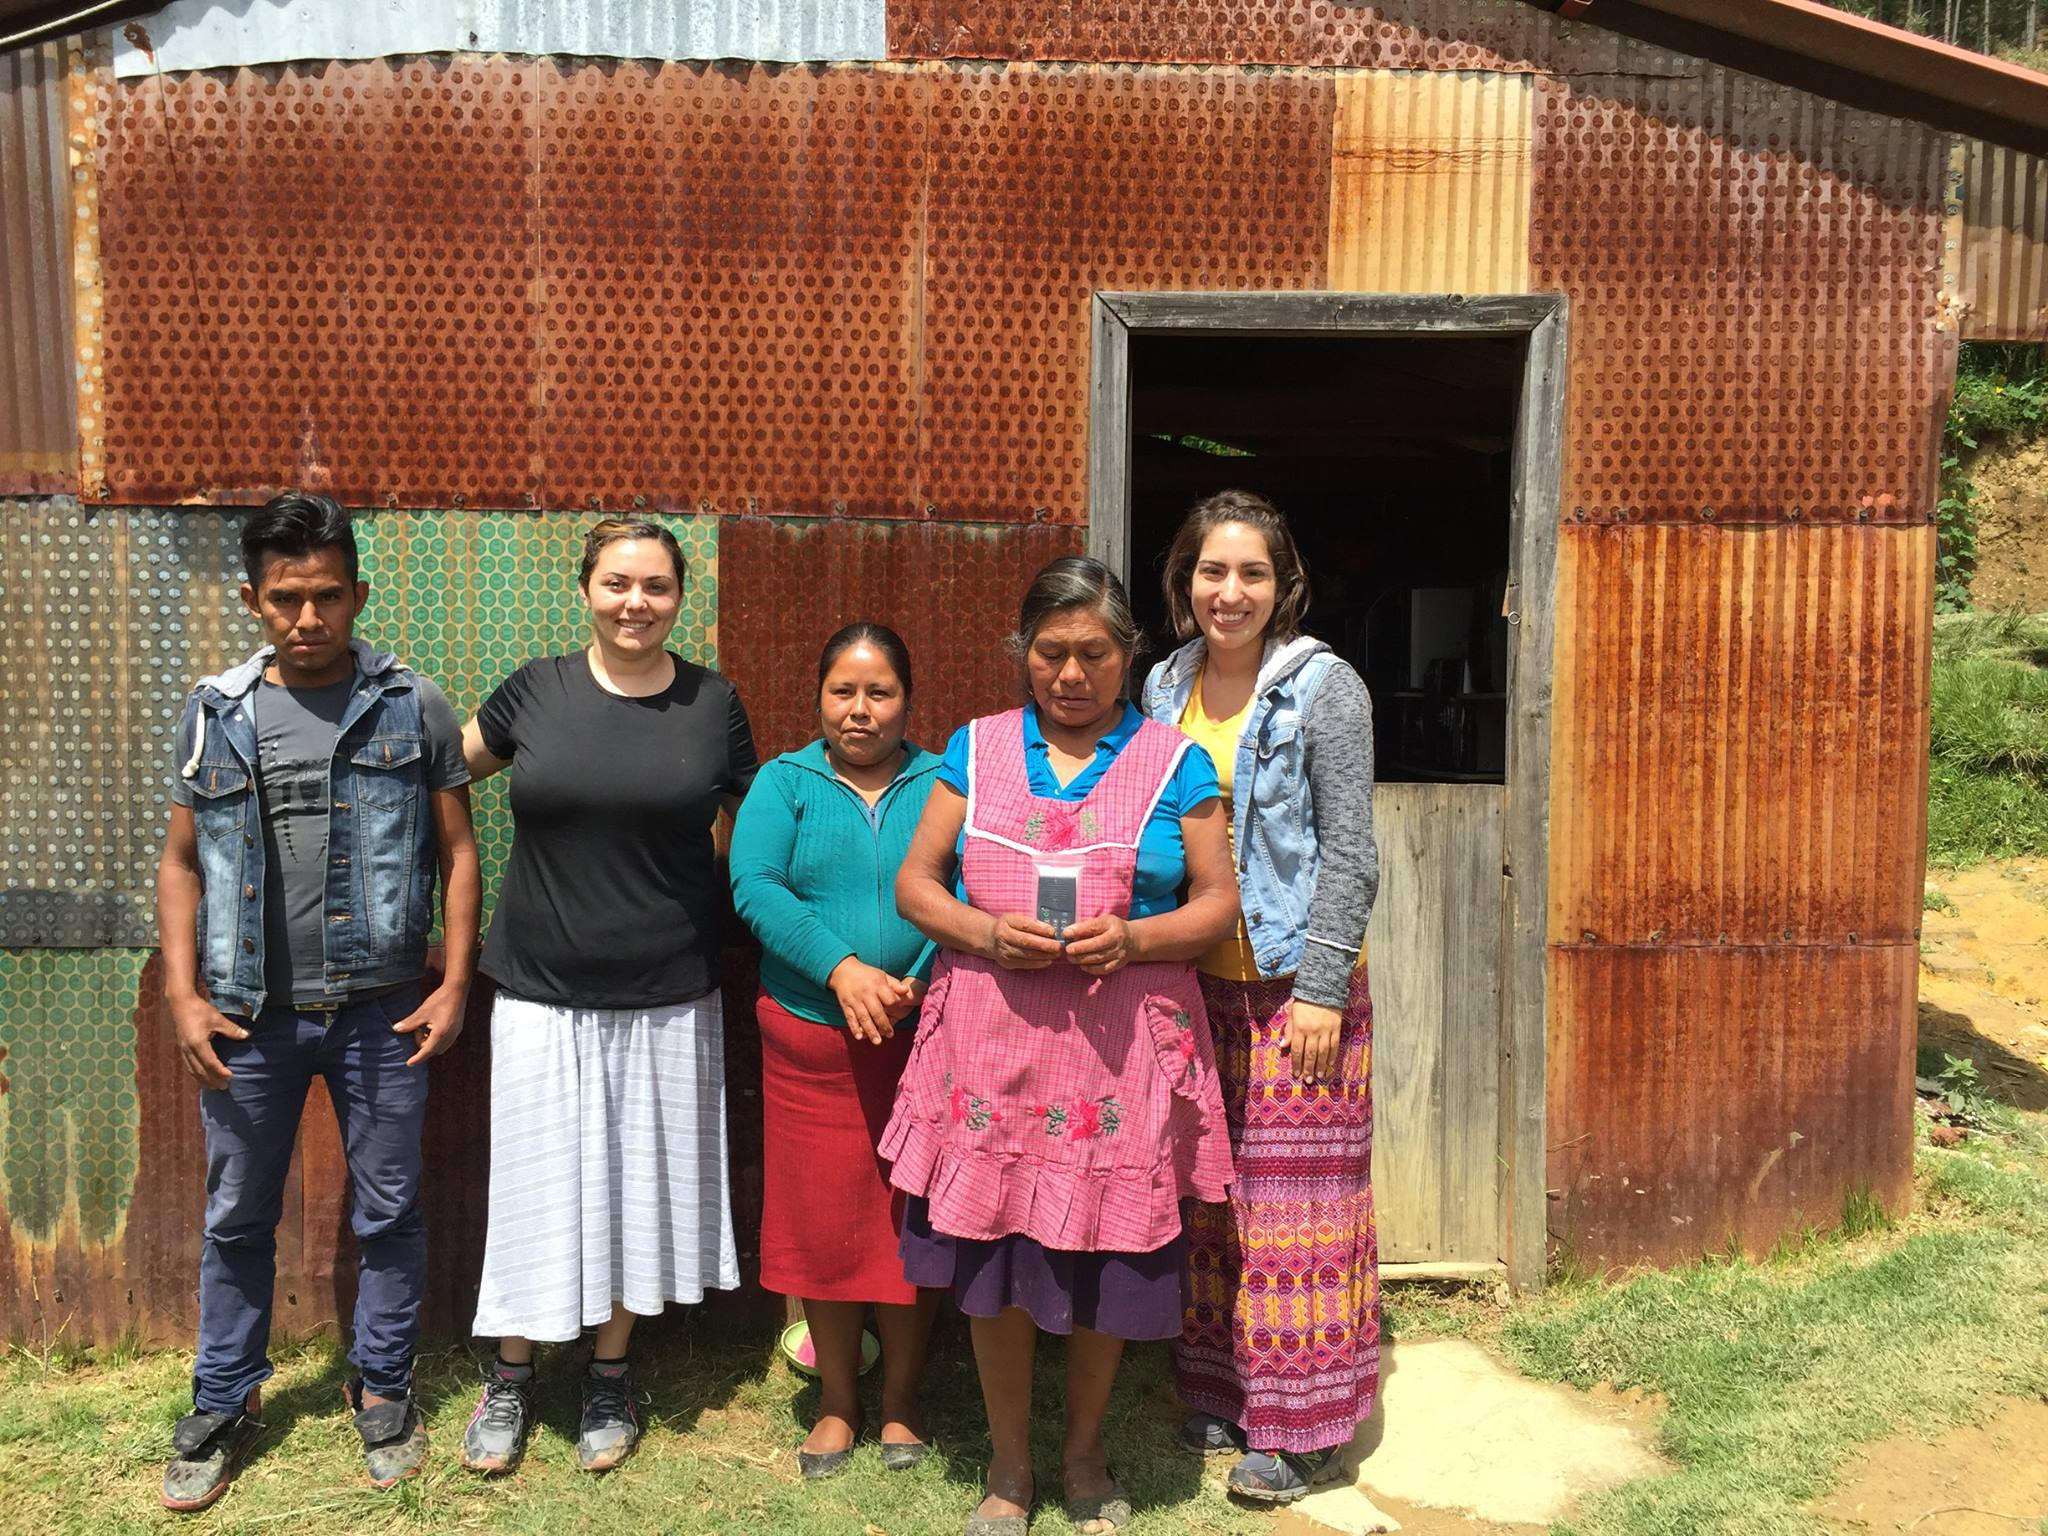 ASM mission trips enable the 'first experience' of hearing God's Word